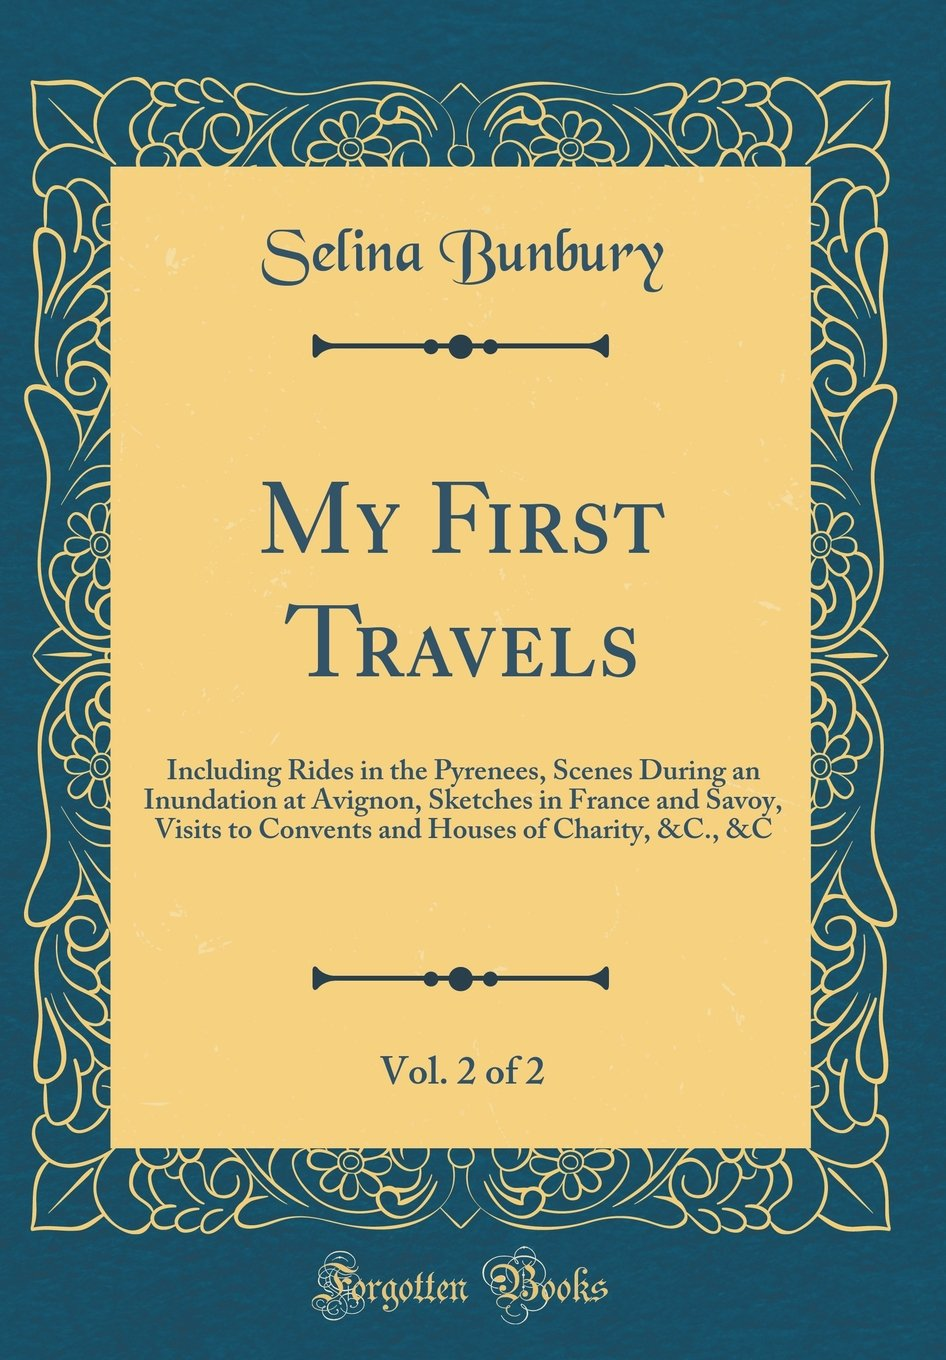 Download My First Travels, Vol. 2 of 2: Including Rides in the Pyrenees, Scenes During an Inundation at Avignon, Sketches in France and Savoy, Visits to ... Houses of Charity, &C., &C (Classic Reprint) PDF